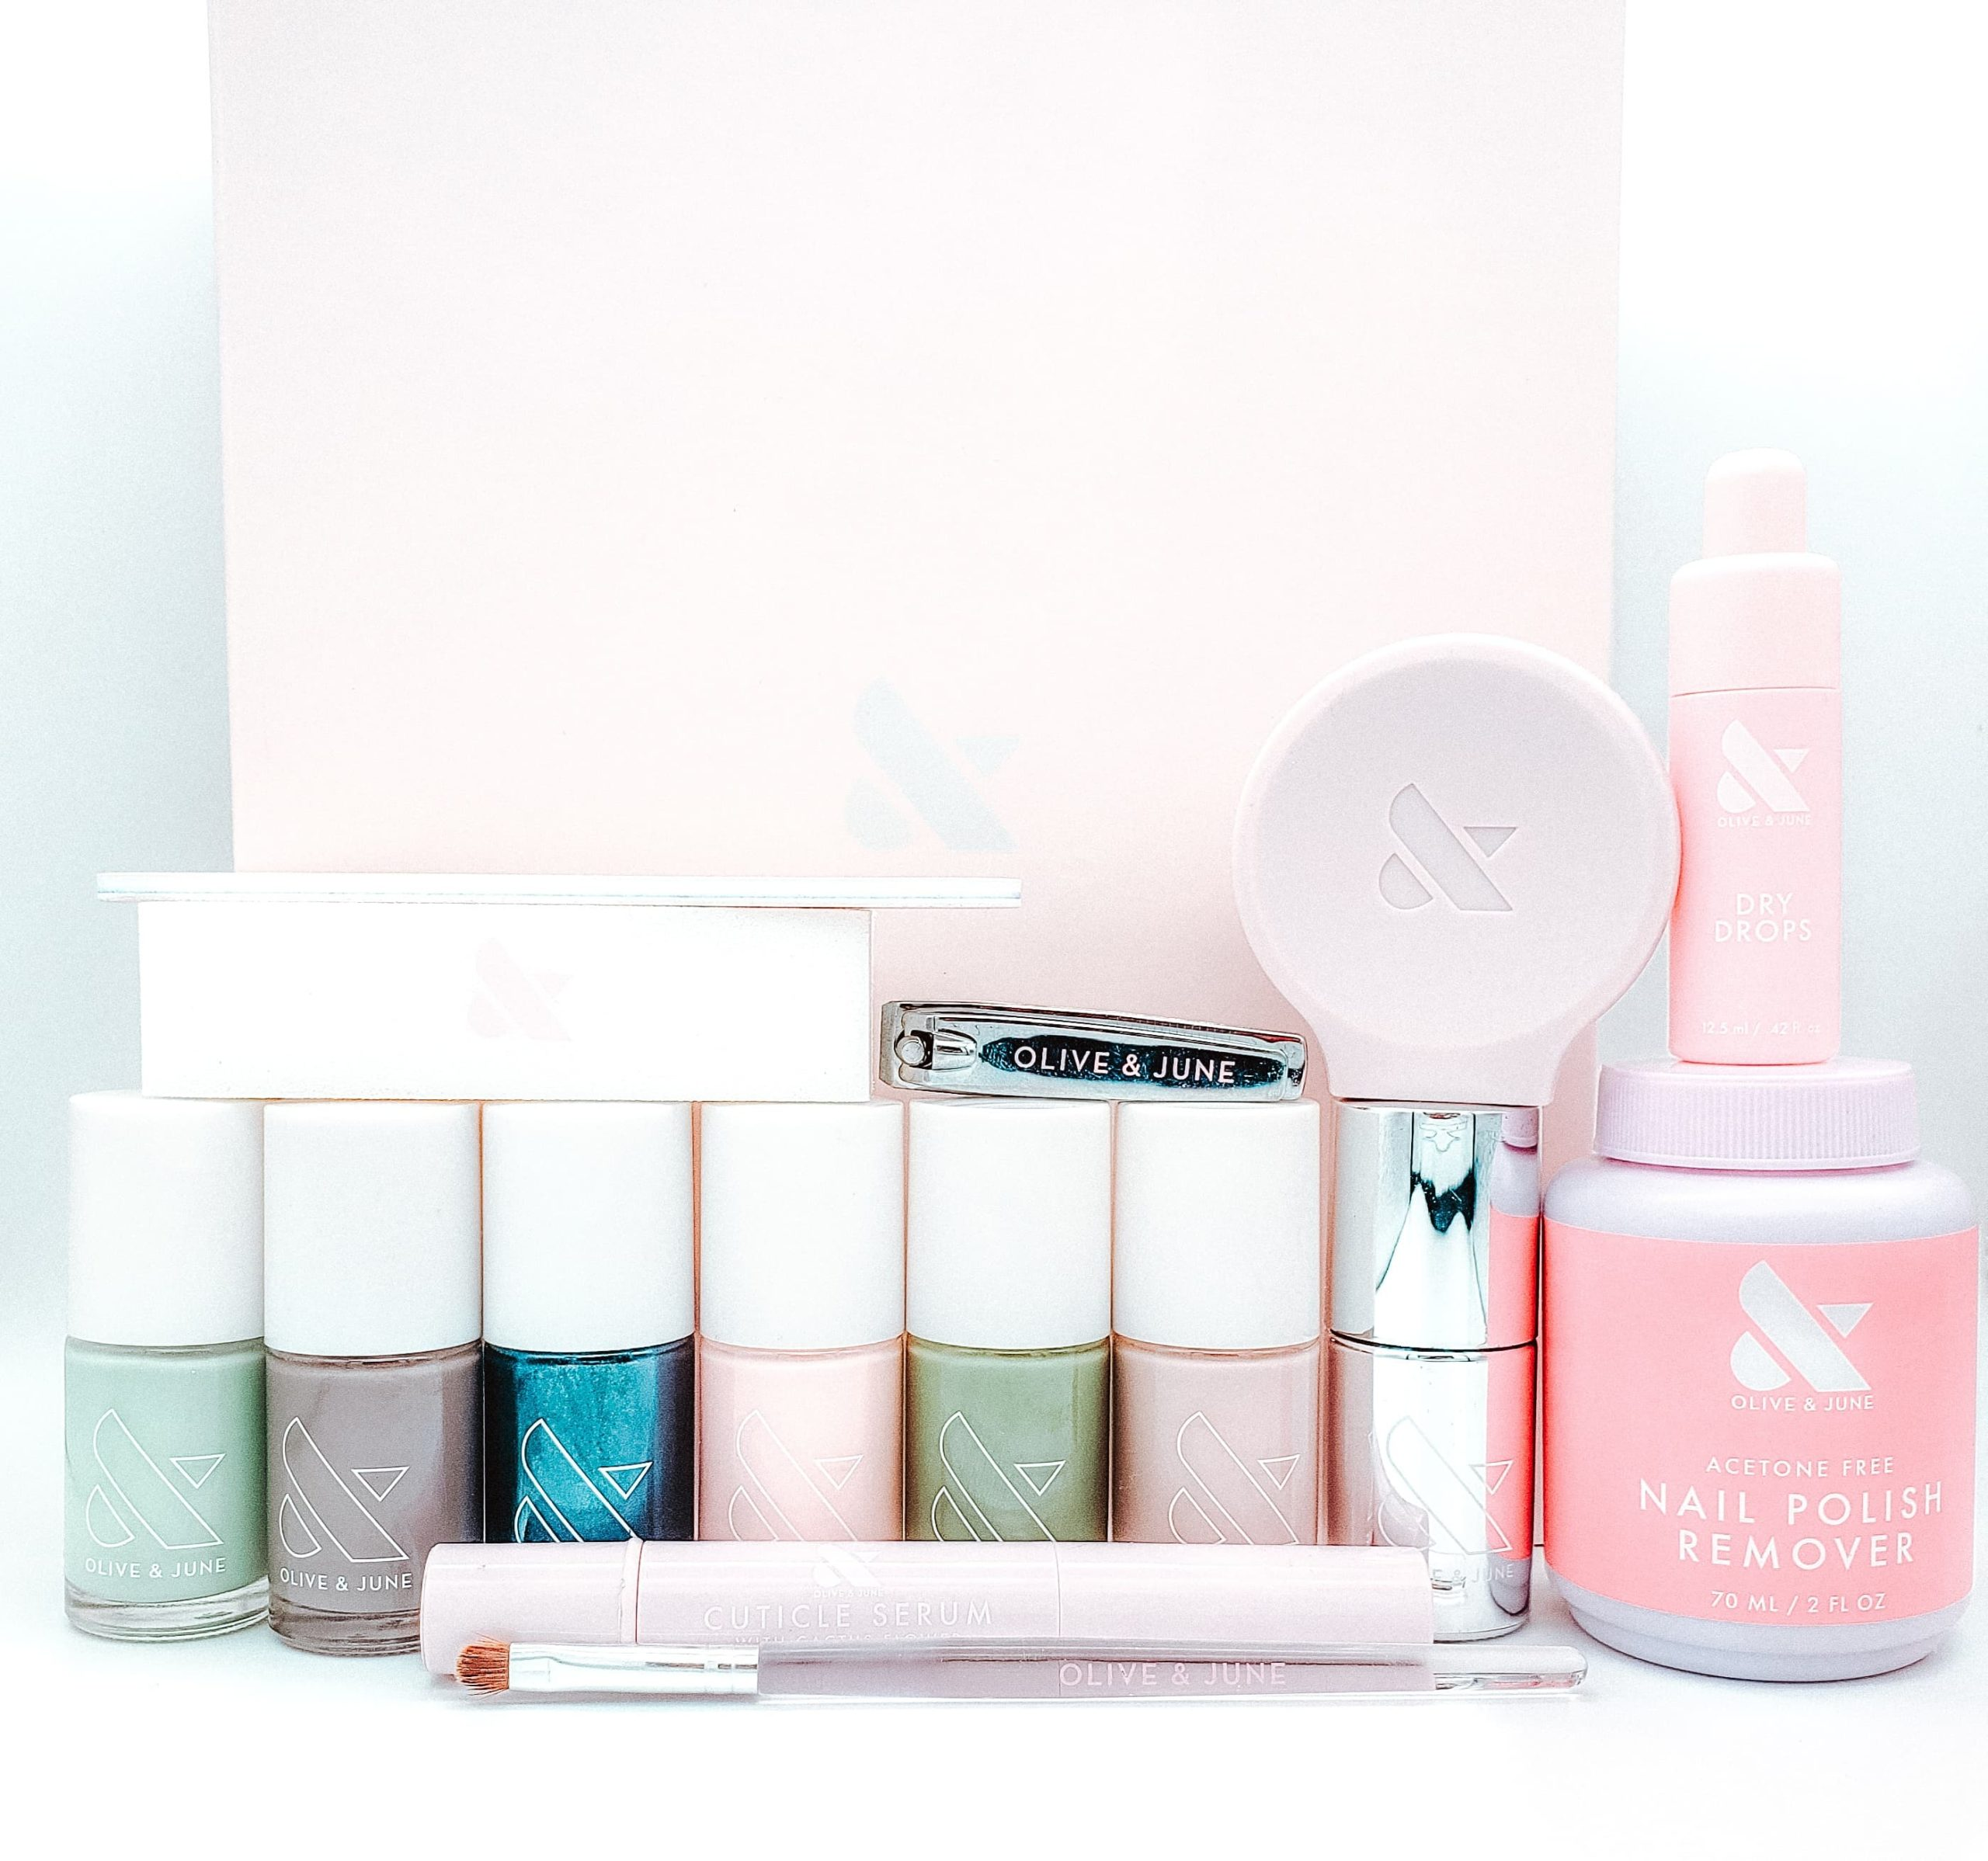 Olive & June Review: Quality Manicures at Home